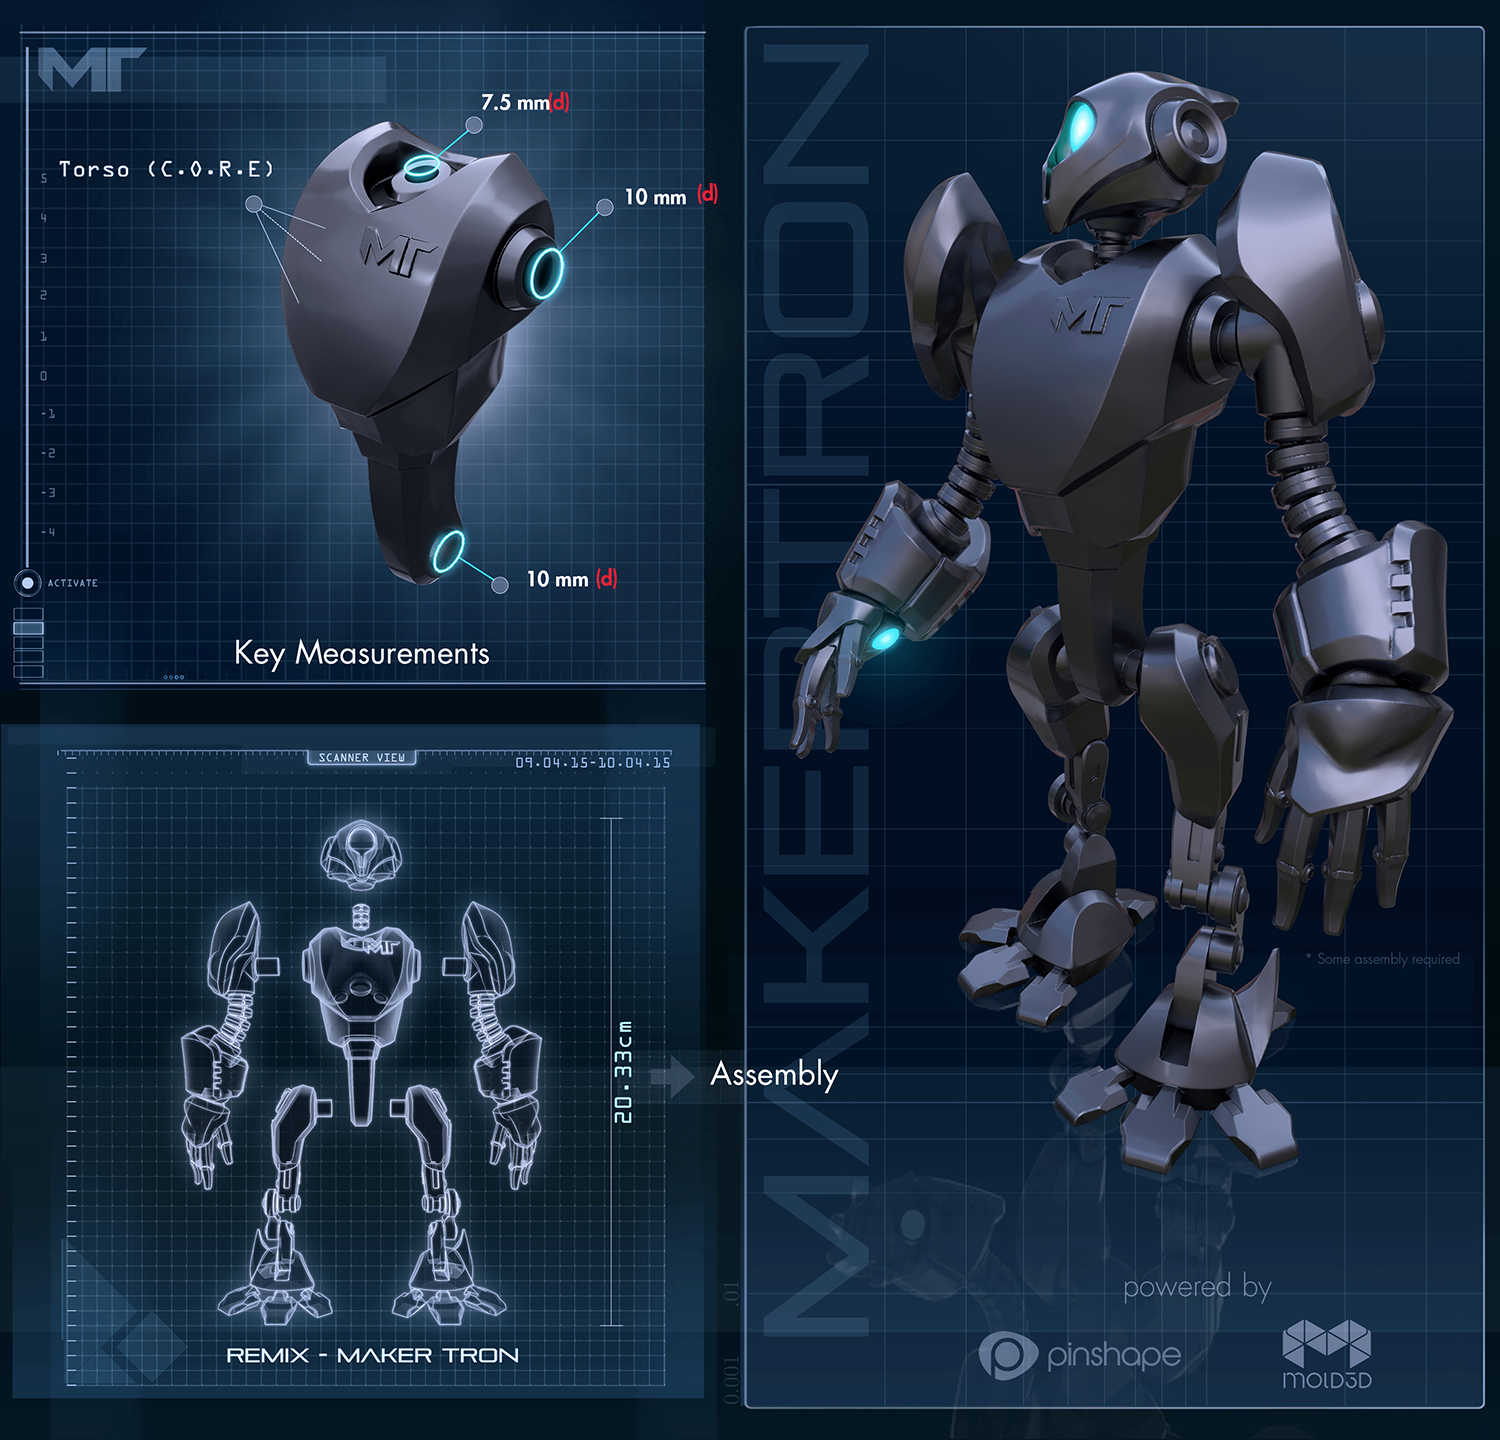 Robot design by Andres Parada. 3D model and illustration by Mold3D.